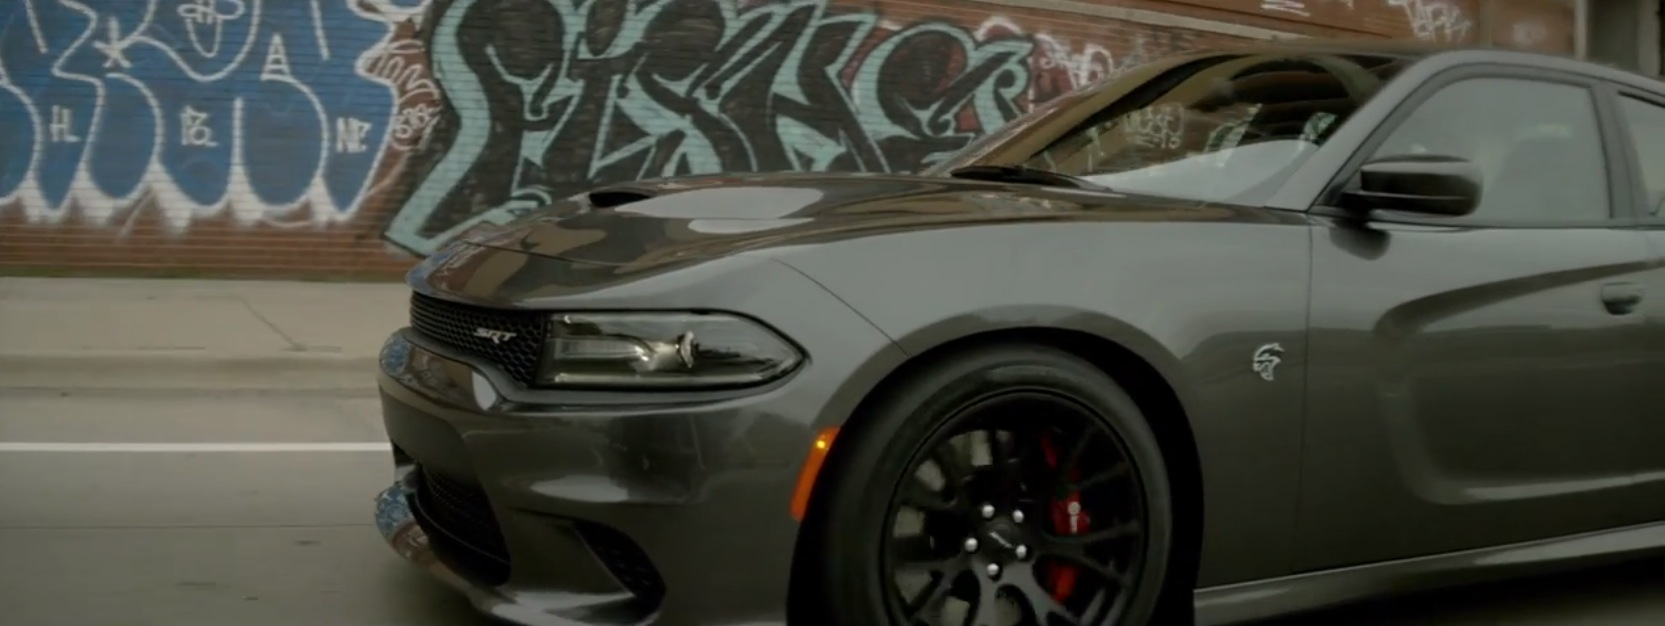 Eminem S New Video Feat Sia Has A Dodge Charger Srt